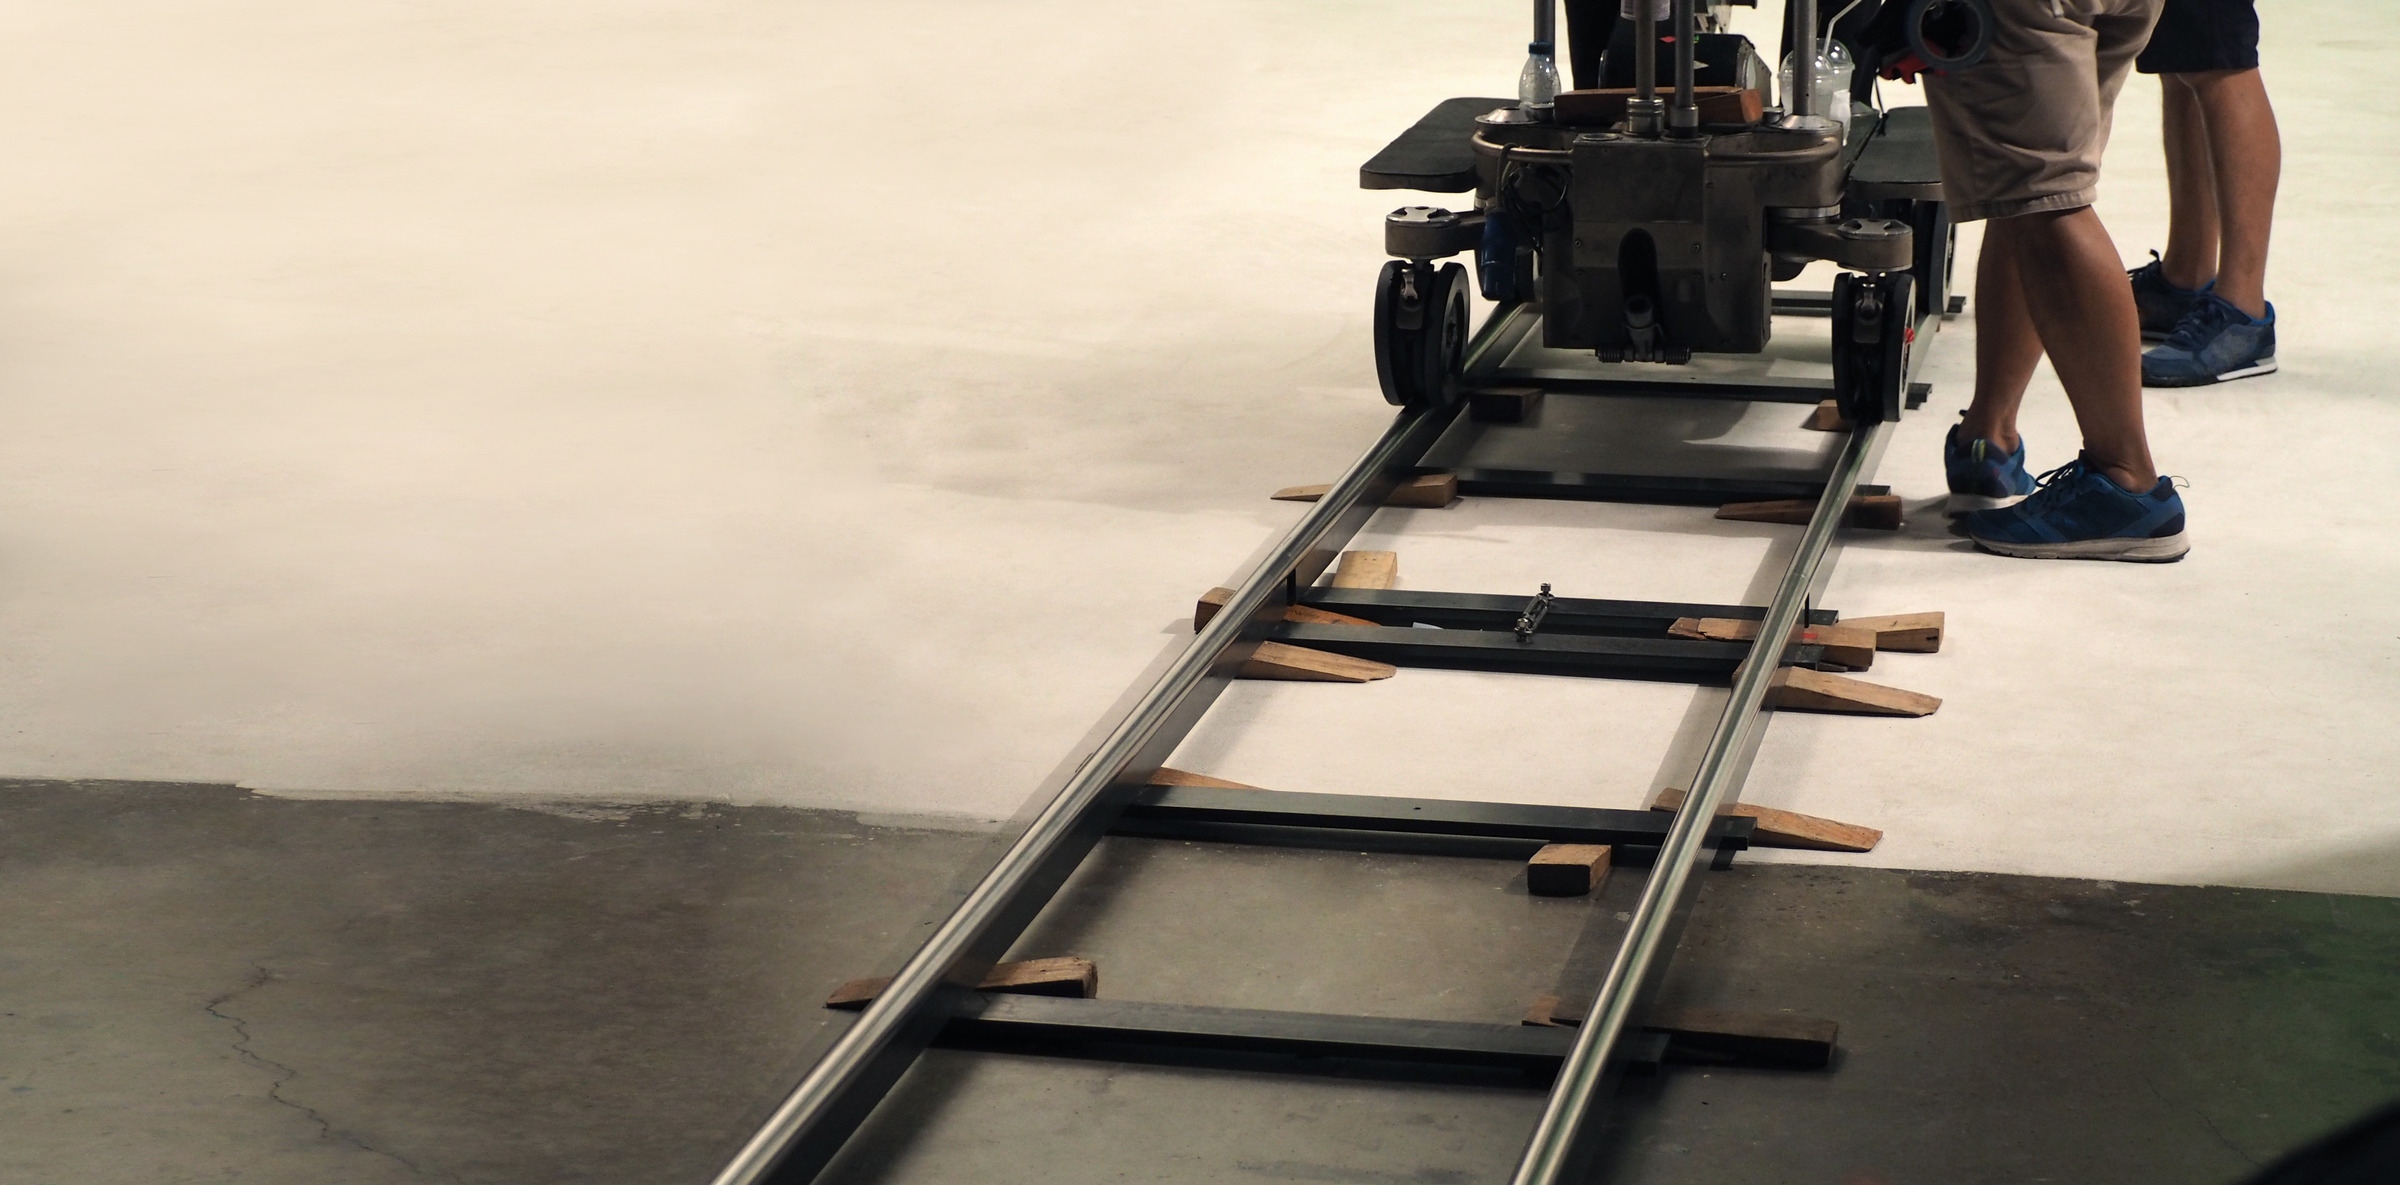 Behind the scenes of production team setting dolly track